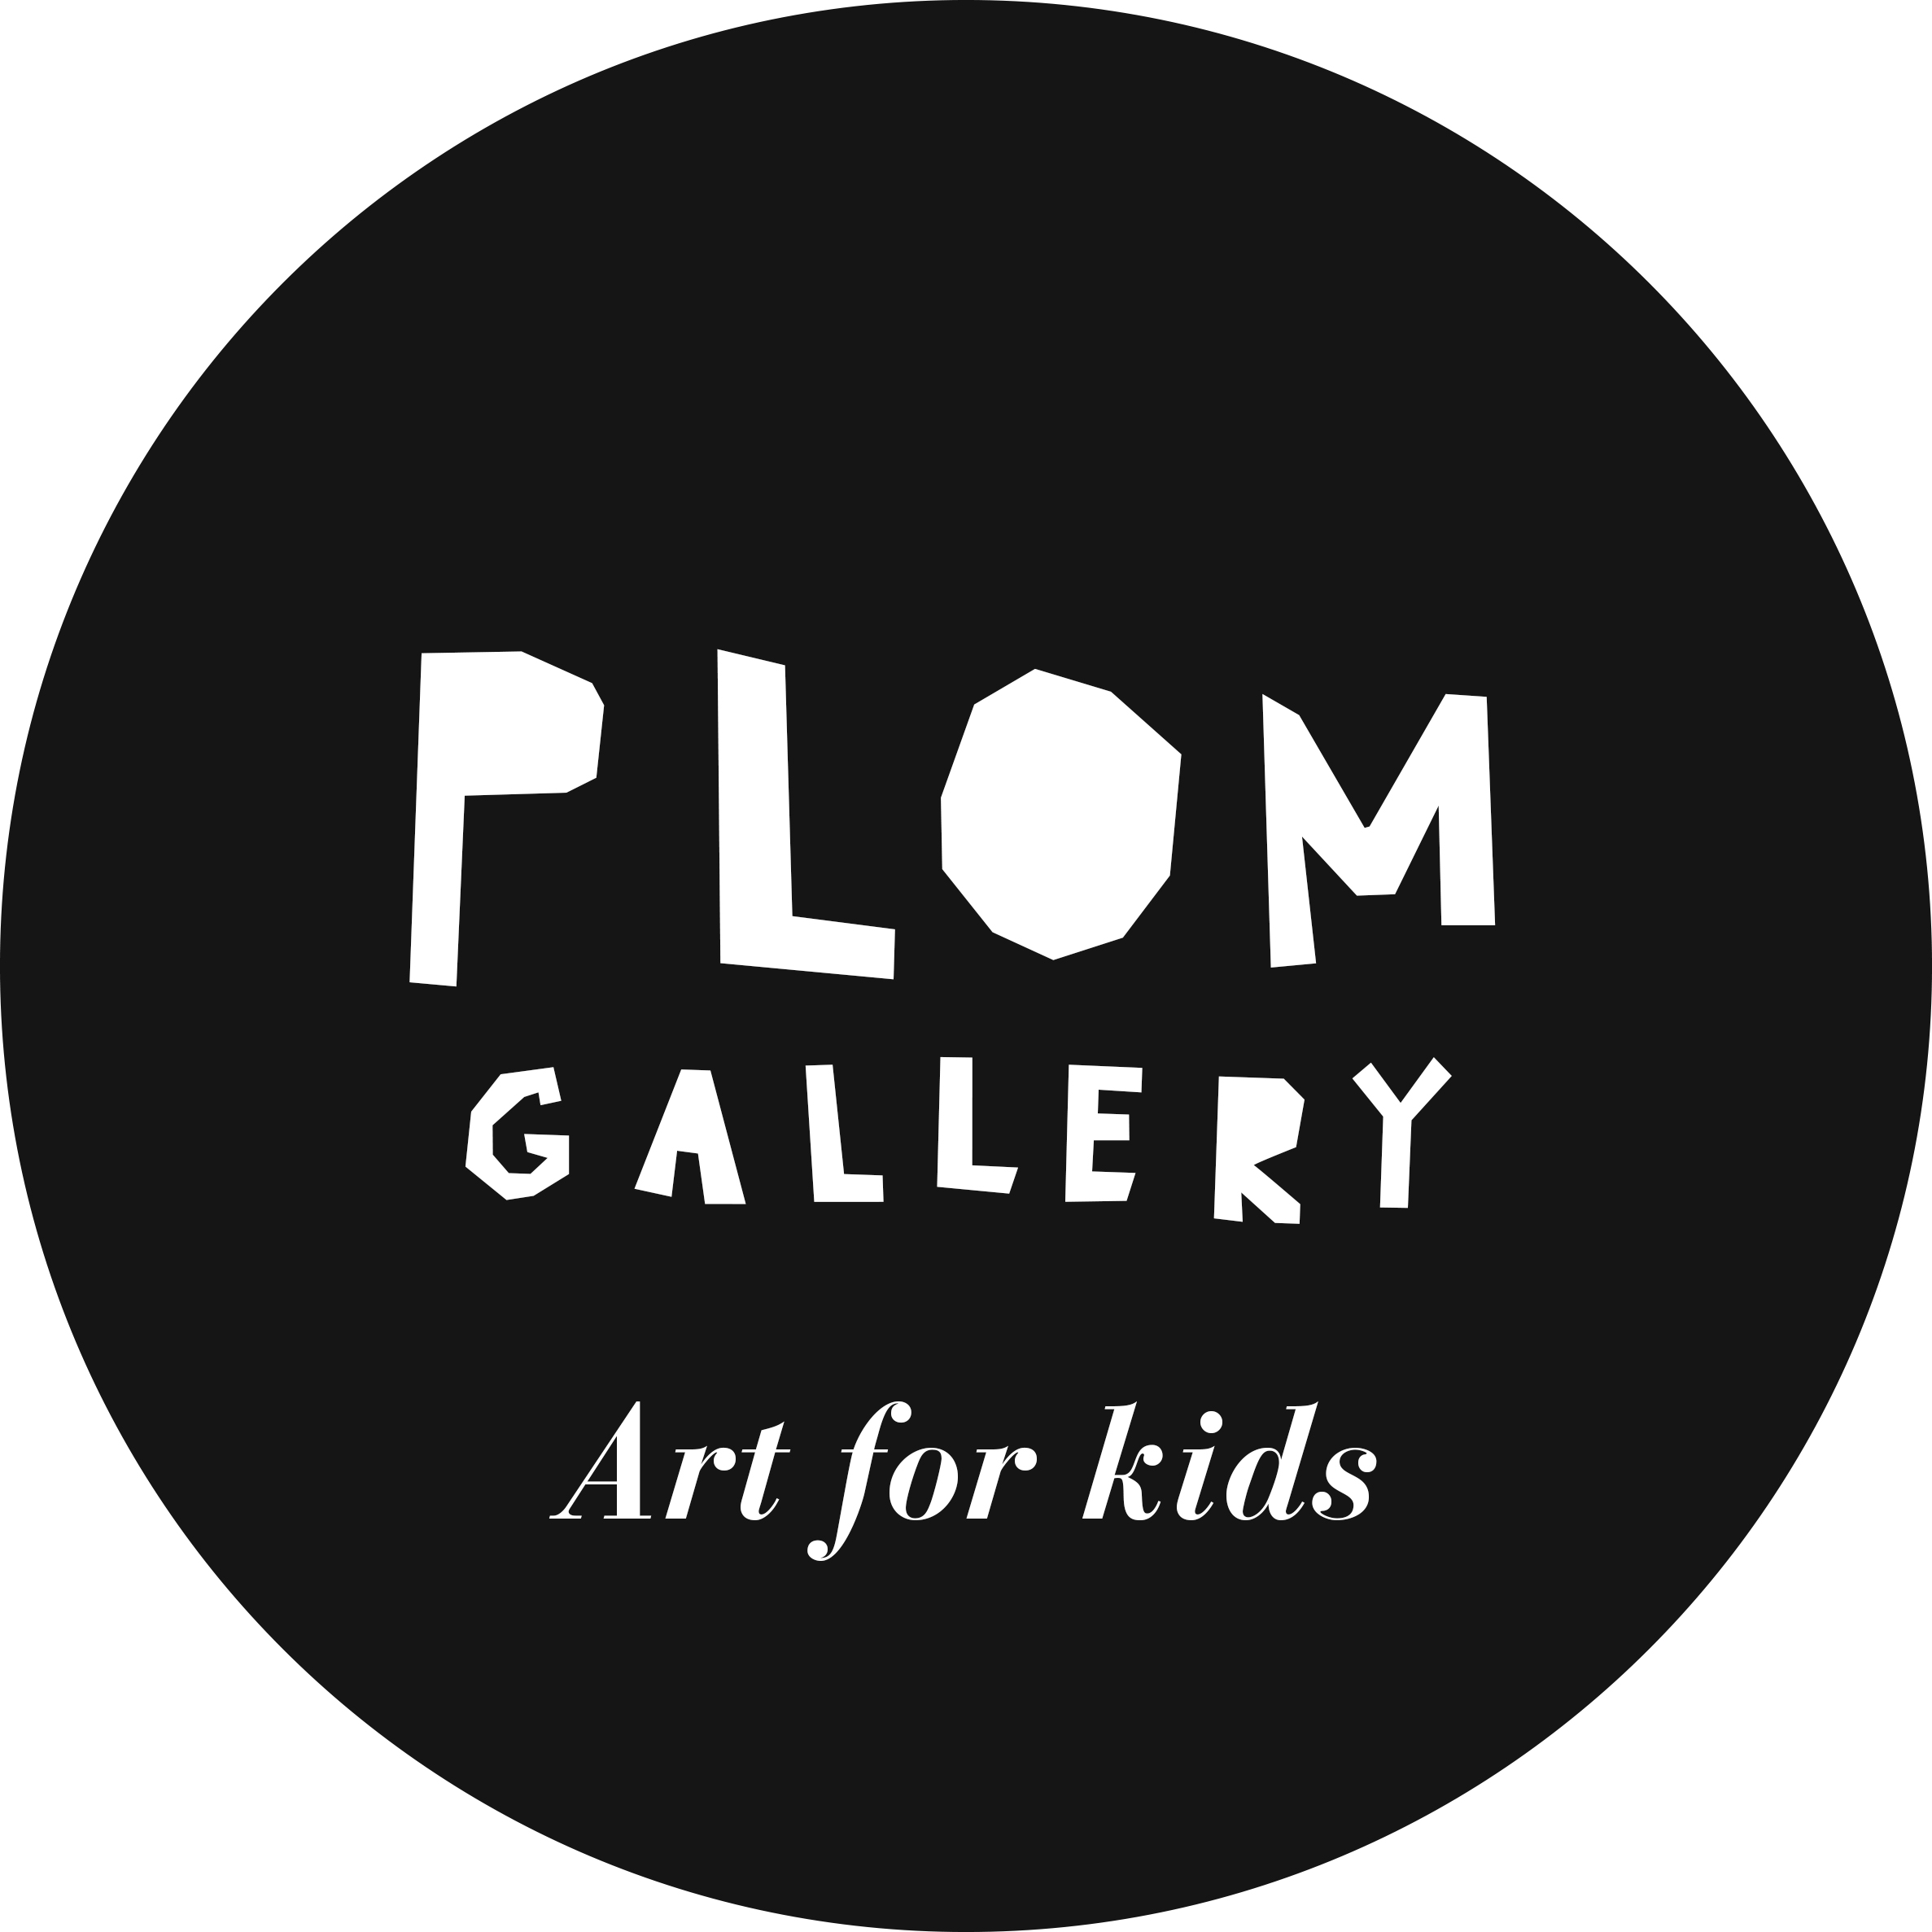 PLOM, art for kids